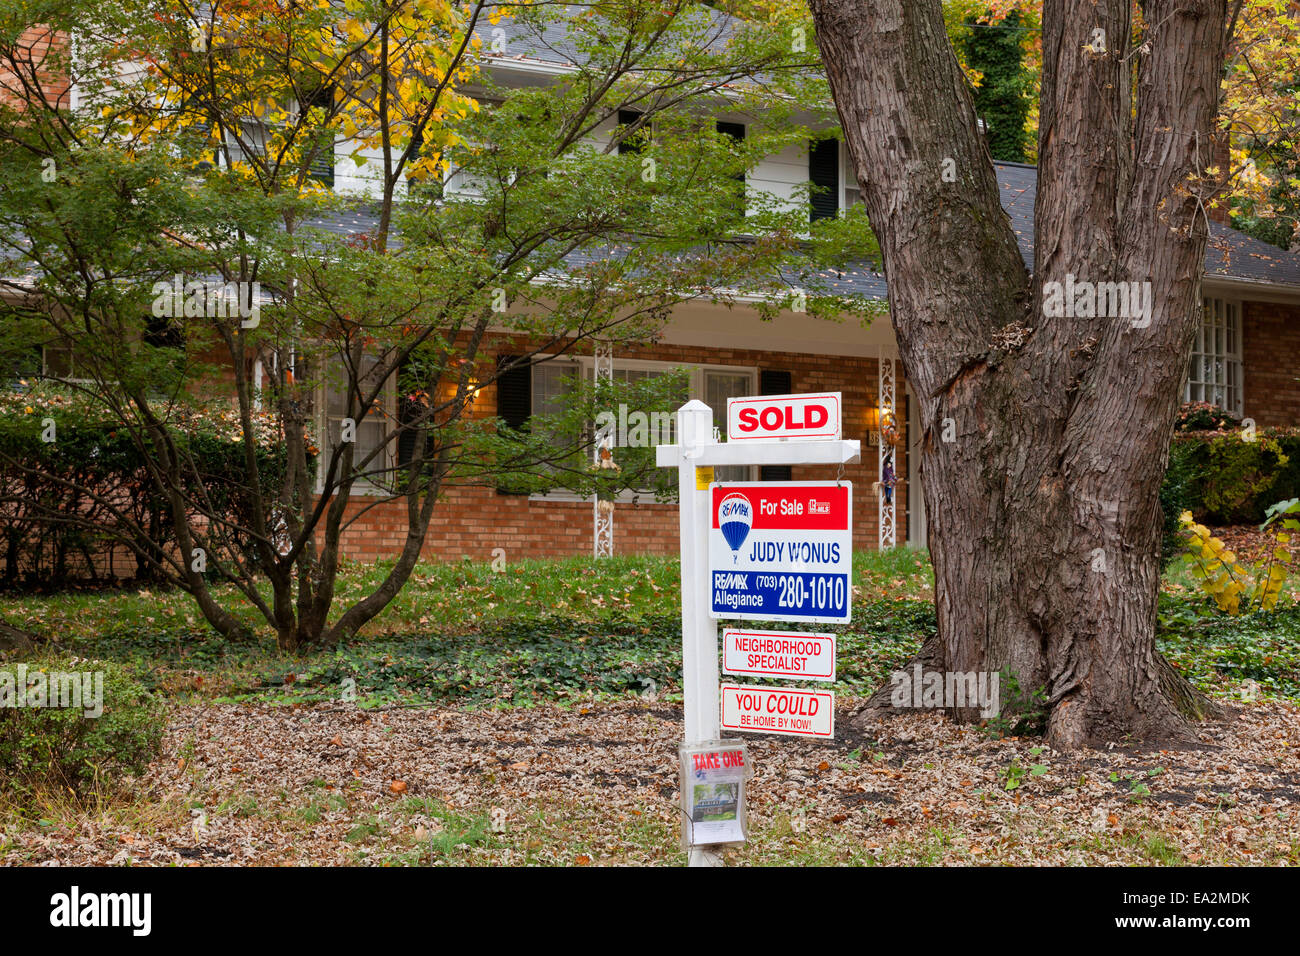 House for sale and sold sign - Virginia USA - Stock Image